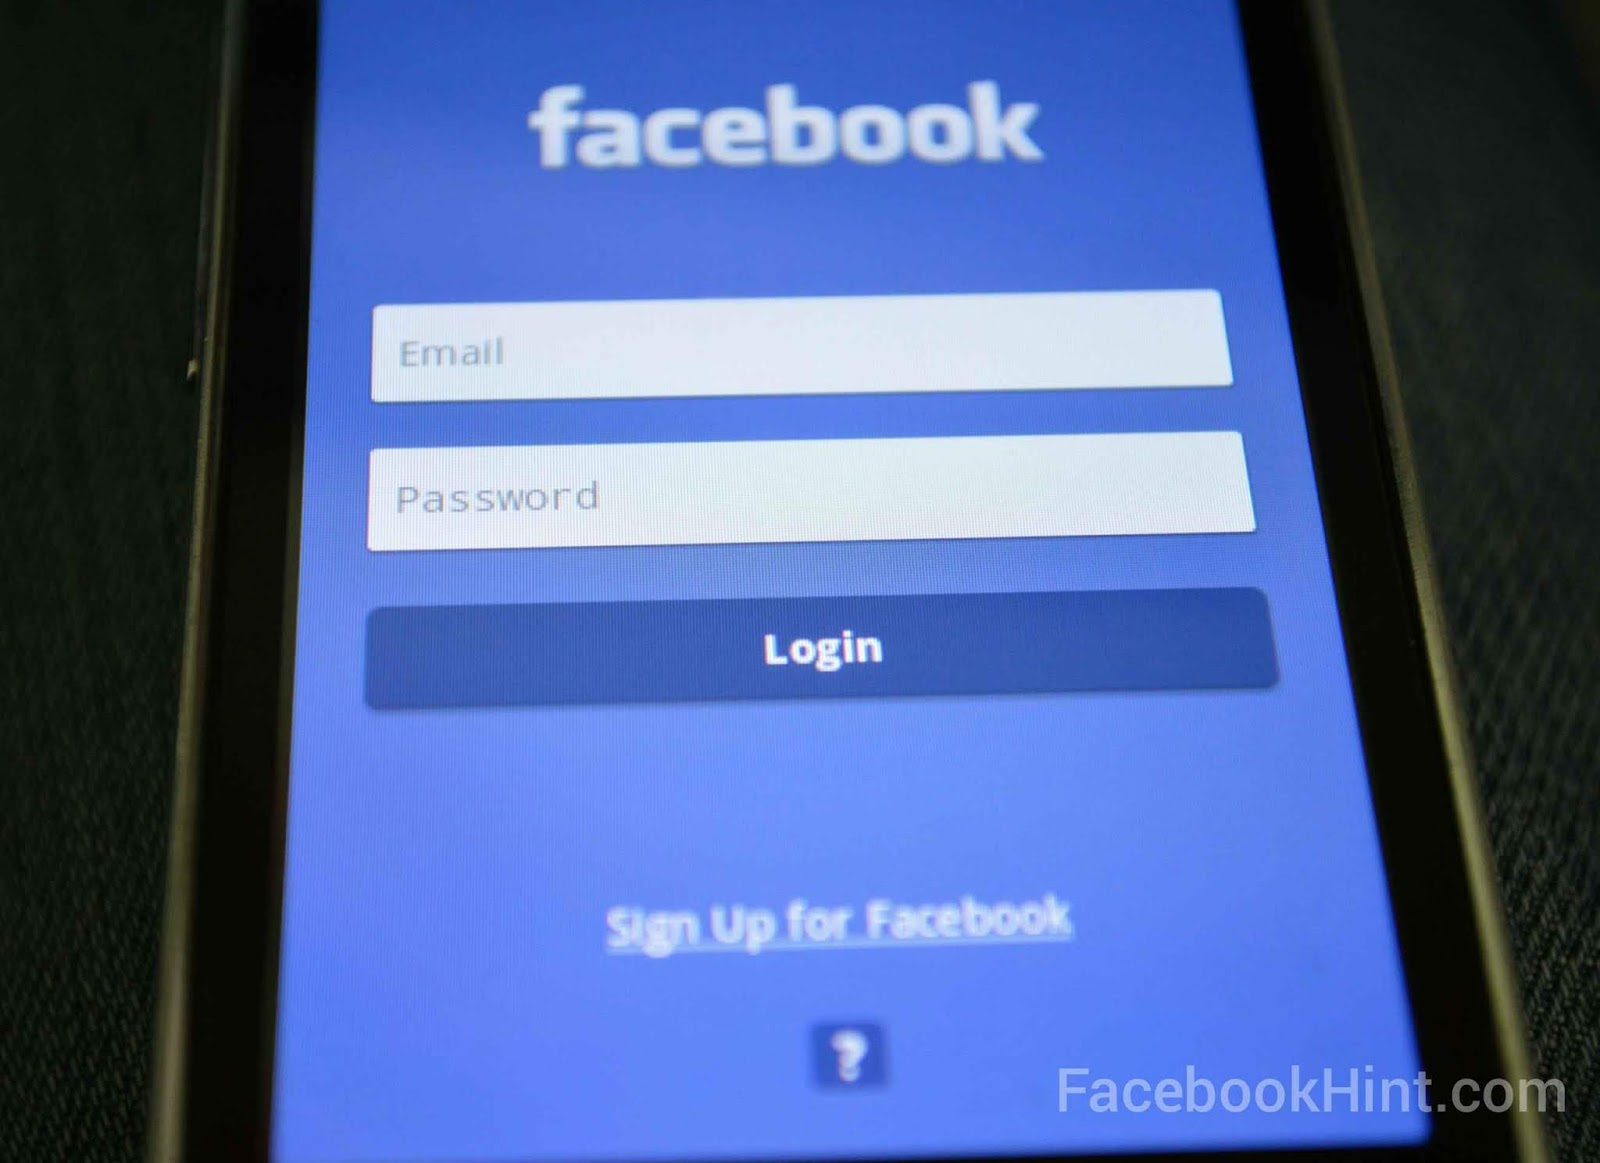 Facebook Login Into My Account In 5 Simple Steps   How do I Log into